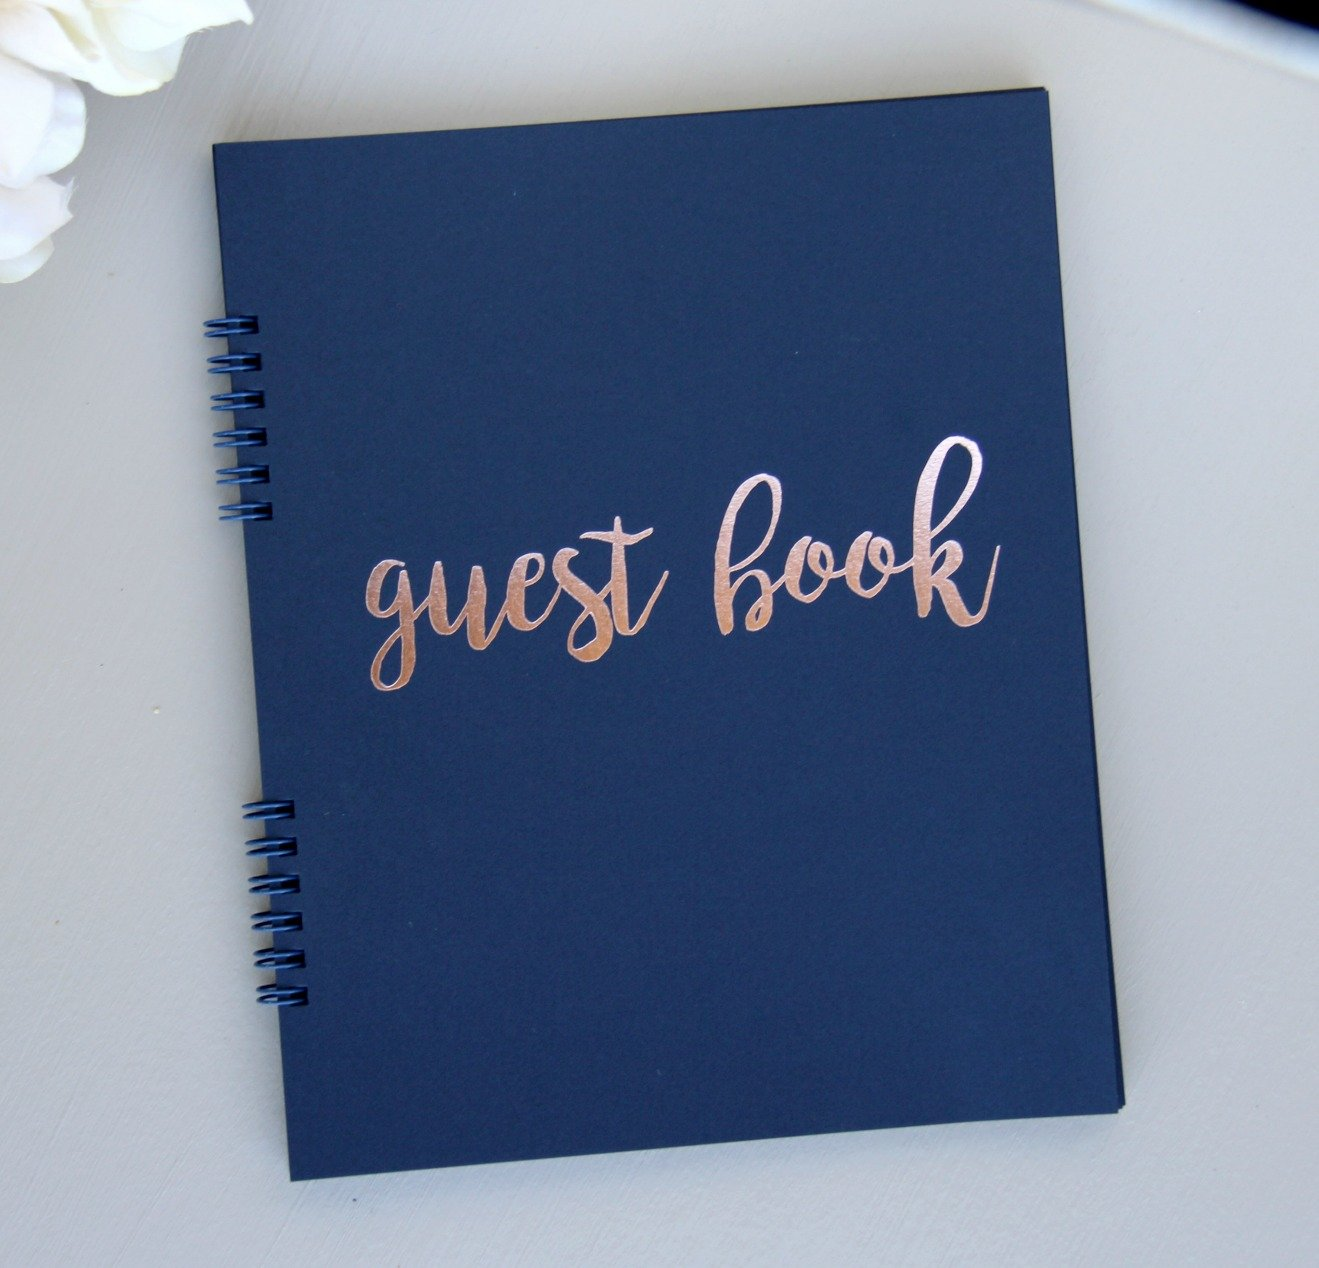 Navy Guest Book for Wedding, Bridal Shower Guest Book Polaroid Pictures, Birthday Guestbook Rose Gold Foil Softcover, 9.5''x7.25'' 130 Navy Pgs Wedding Guestbook Polaroid, Rose Gold Baby Shower (Navy)